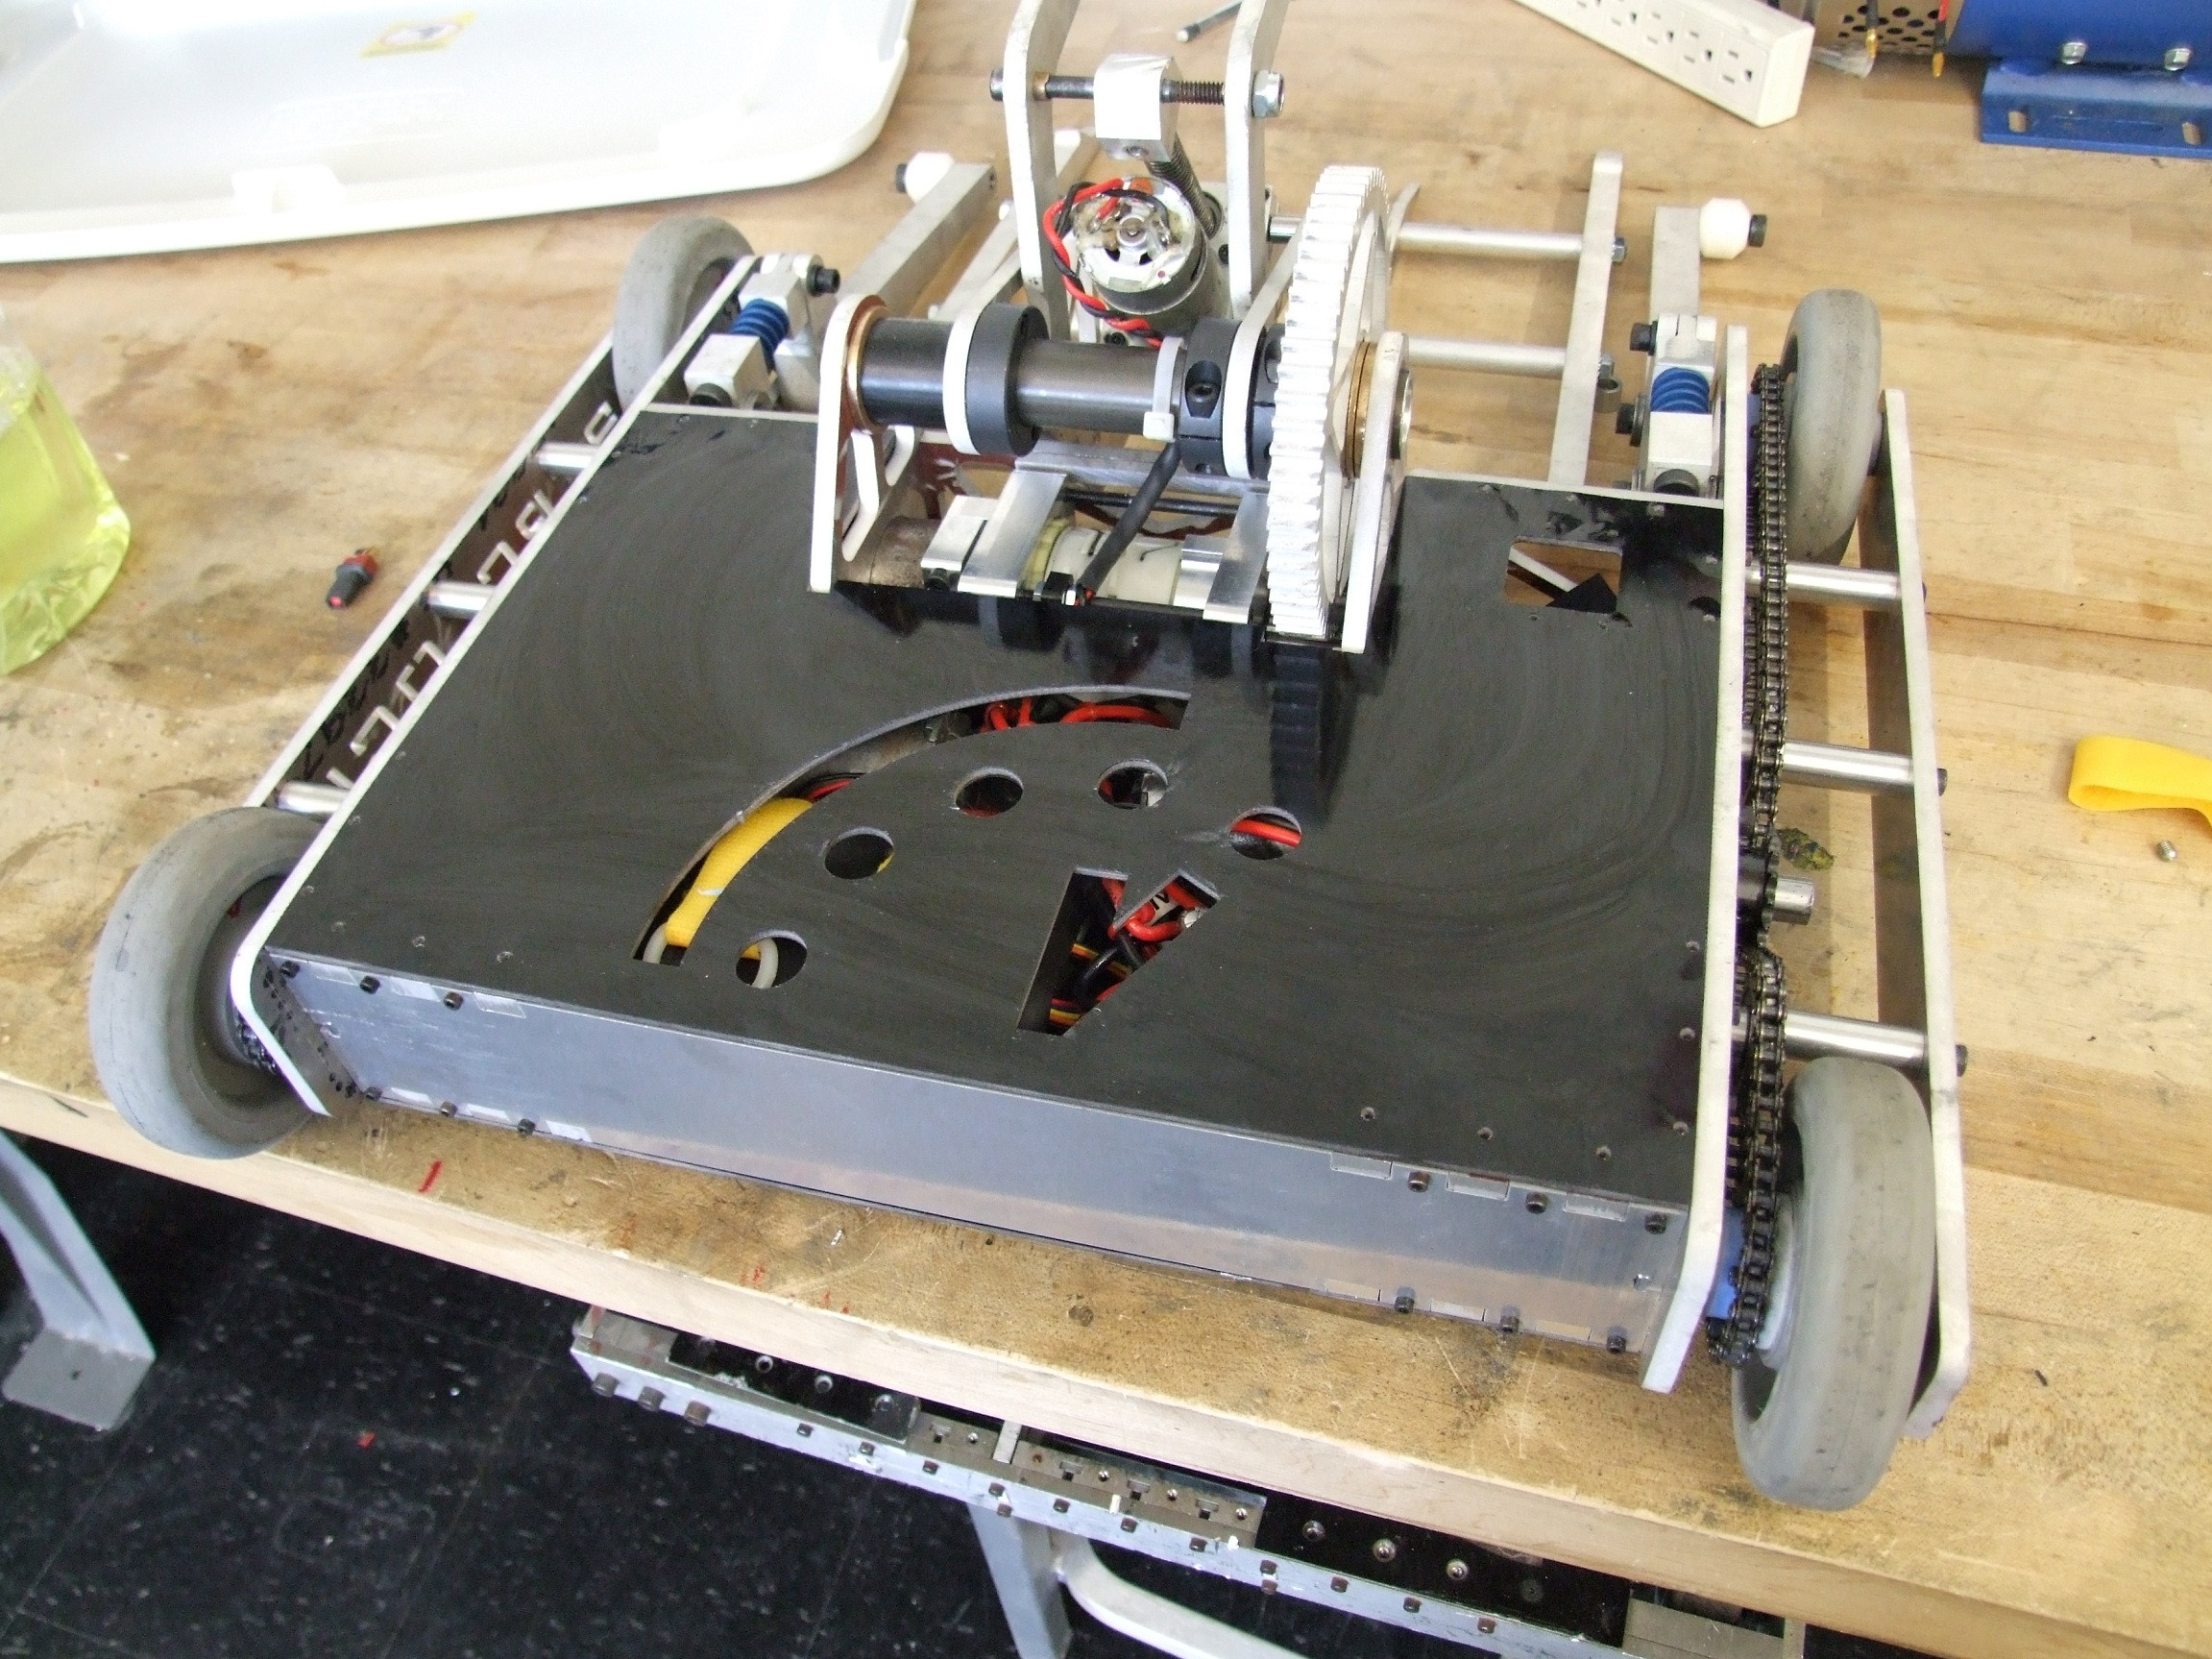 Best ideas about DIY Water Jet Cutter . Save or Pin Diy Waterjet Cutting Head DIY Projects Now.